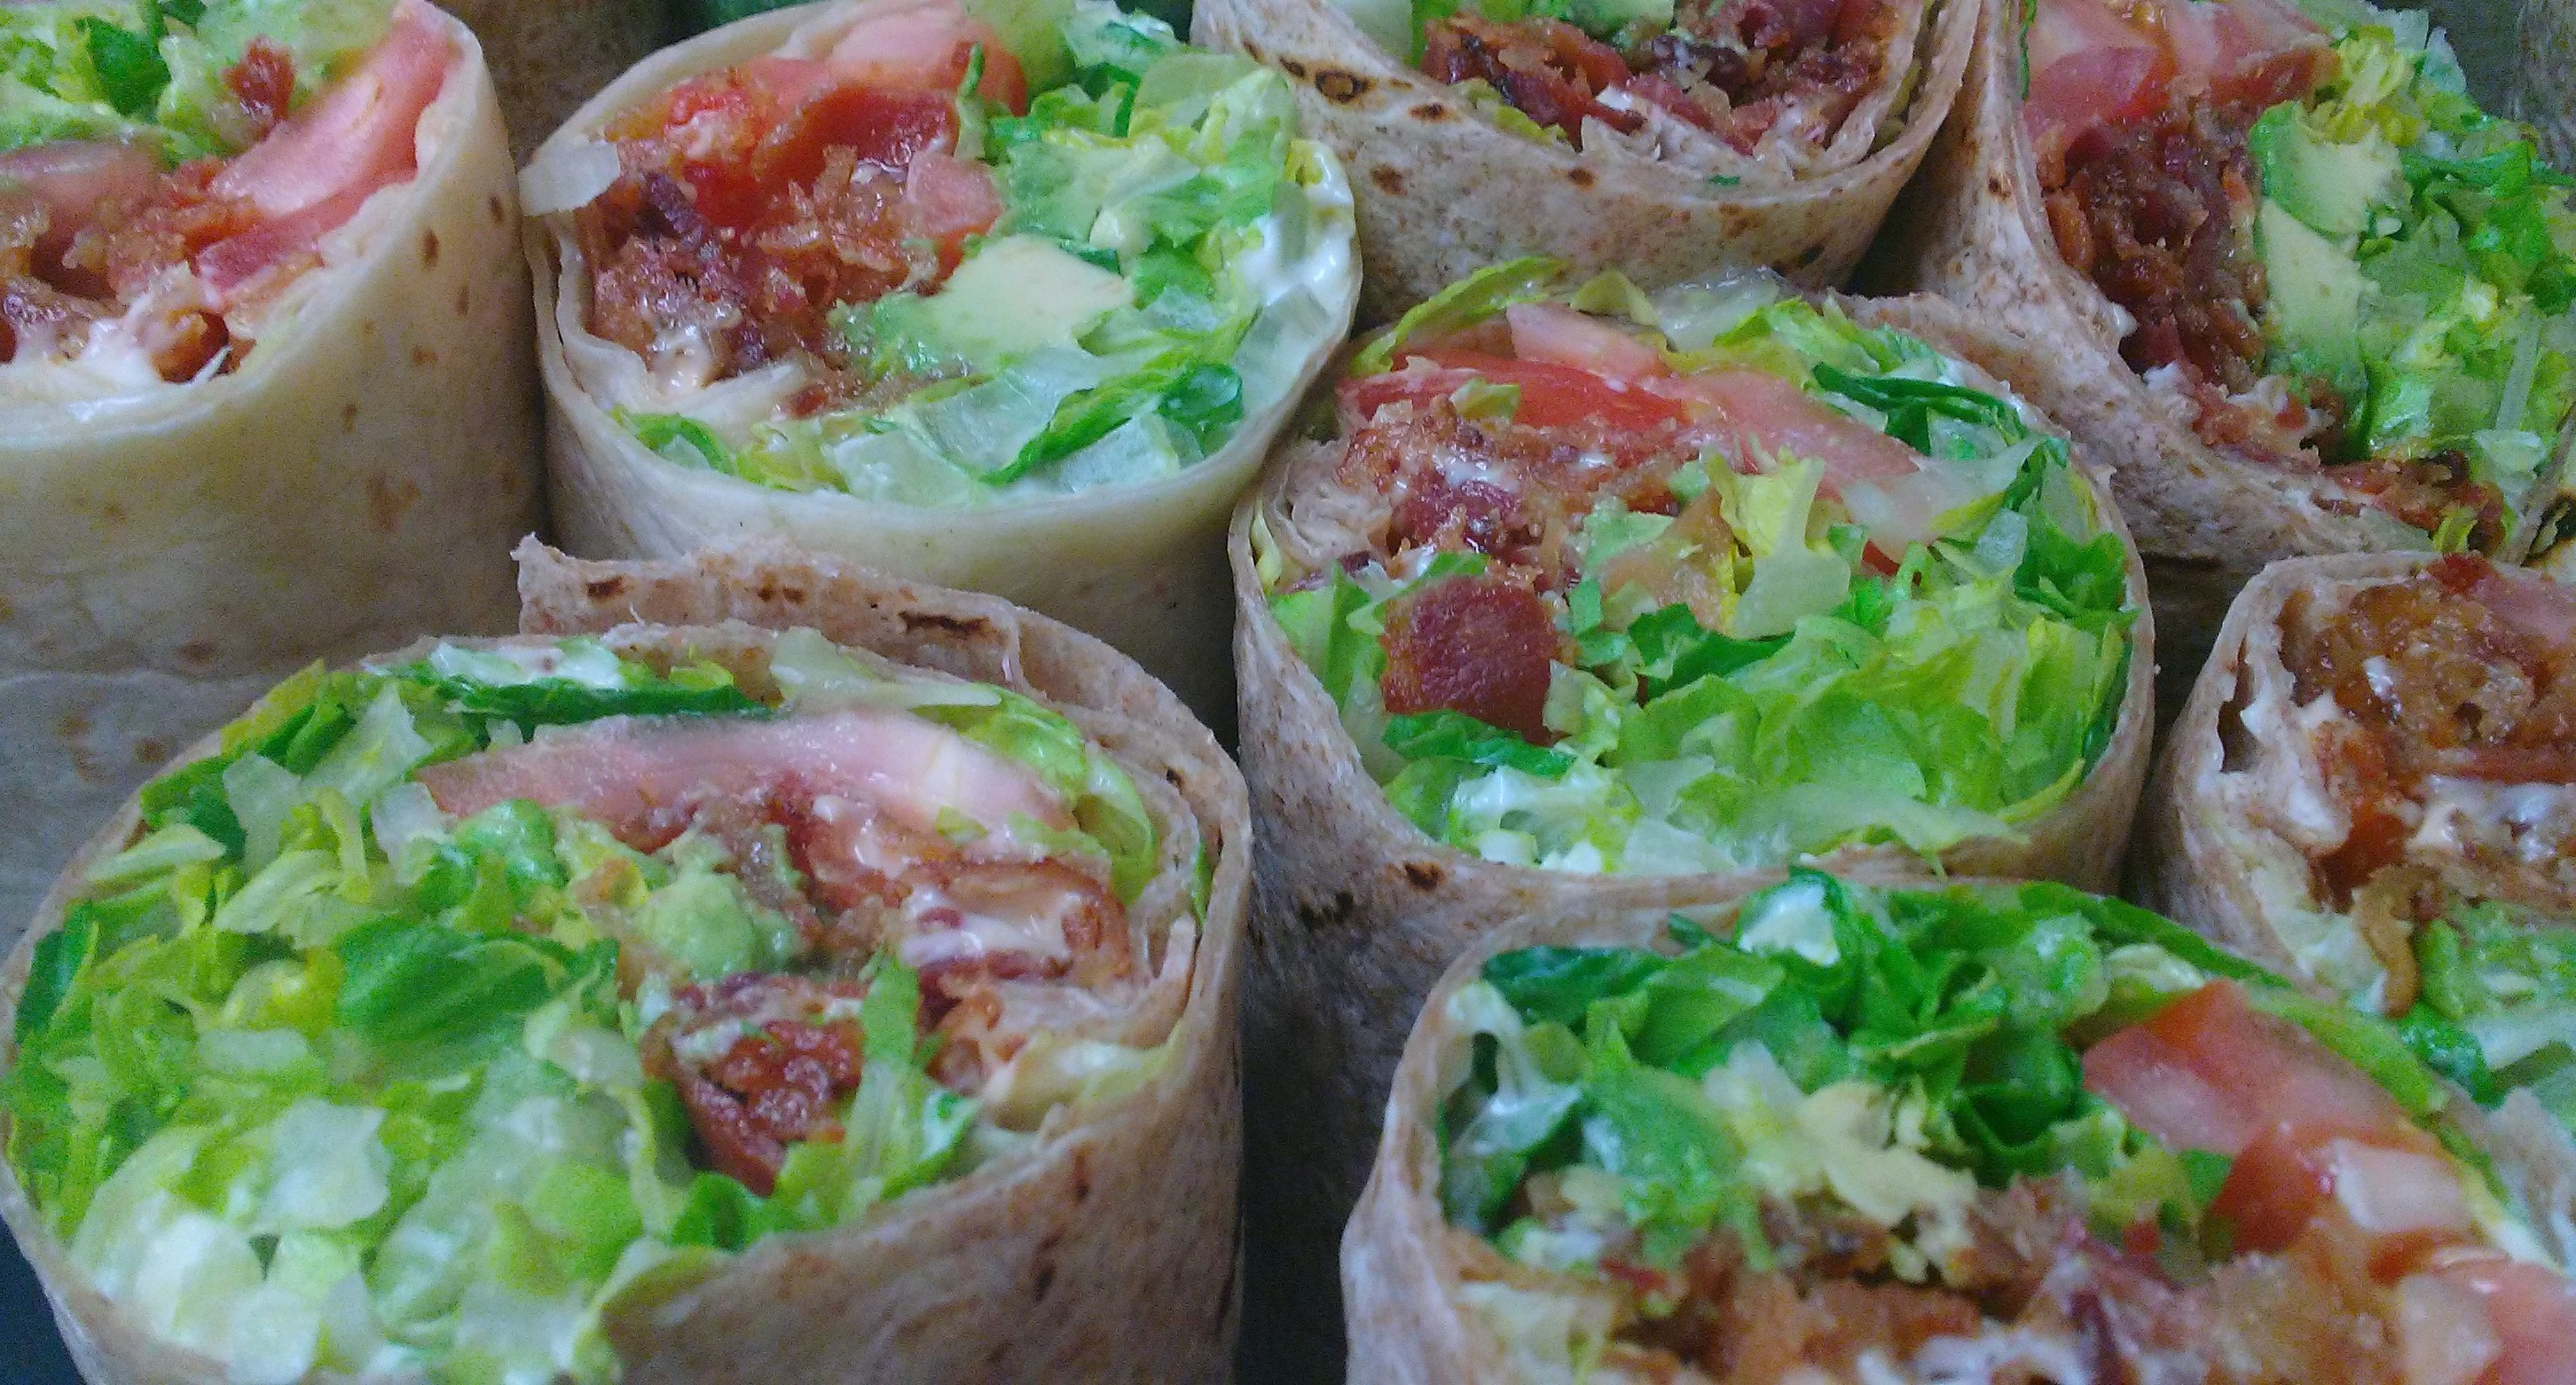 Savory Stuffed B.L.A.T. Wraps Catered to Your NYC Hudson Yards Office